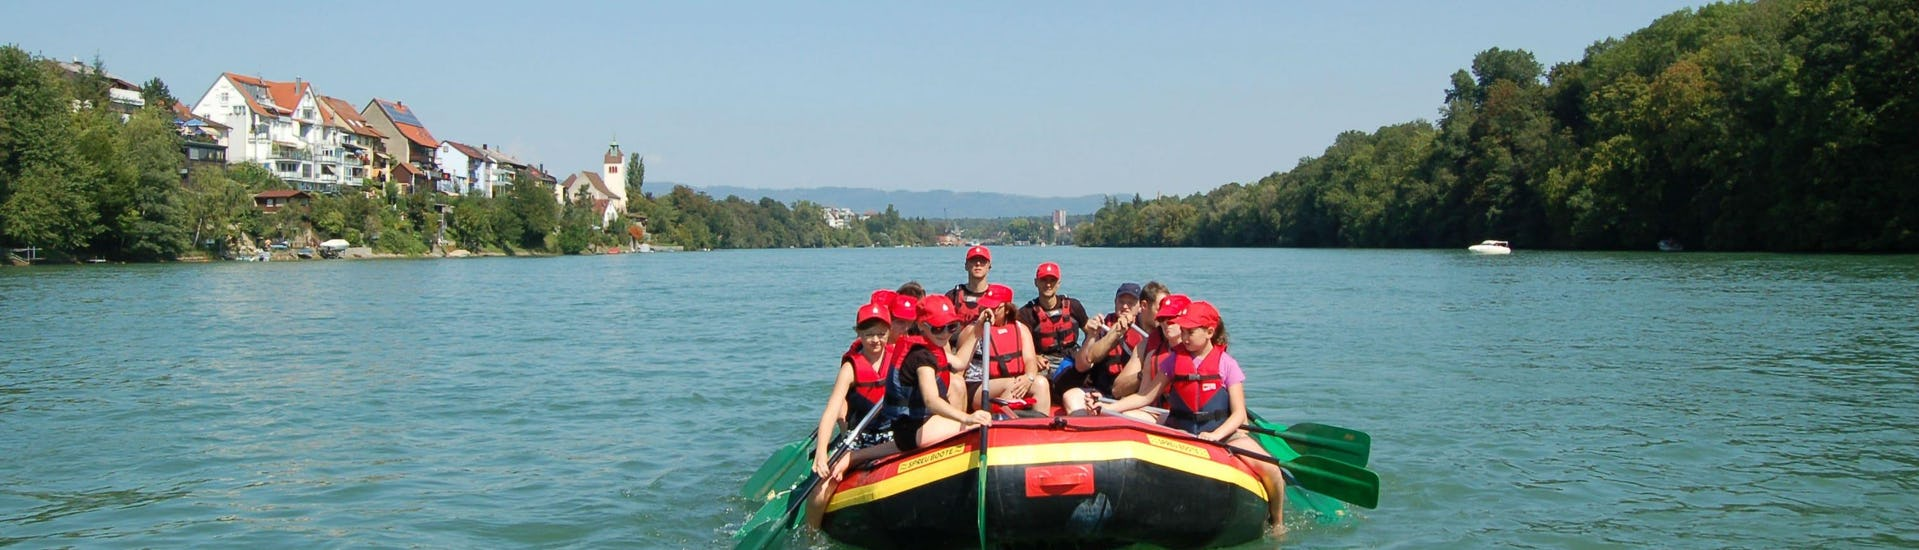 """Rafting """"Soft"""" for Groups (15+ ppl.) - Rhine"""